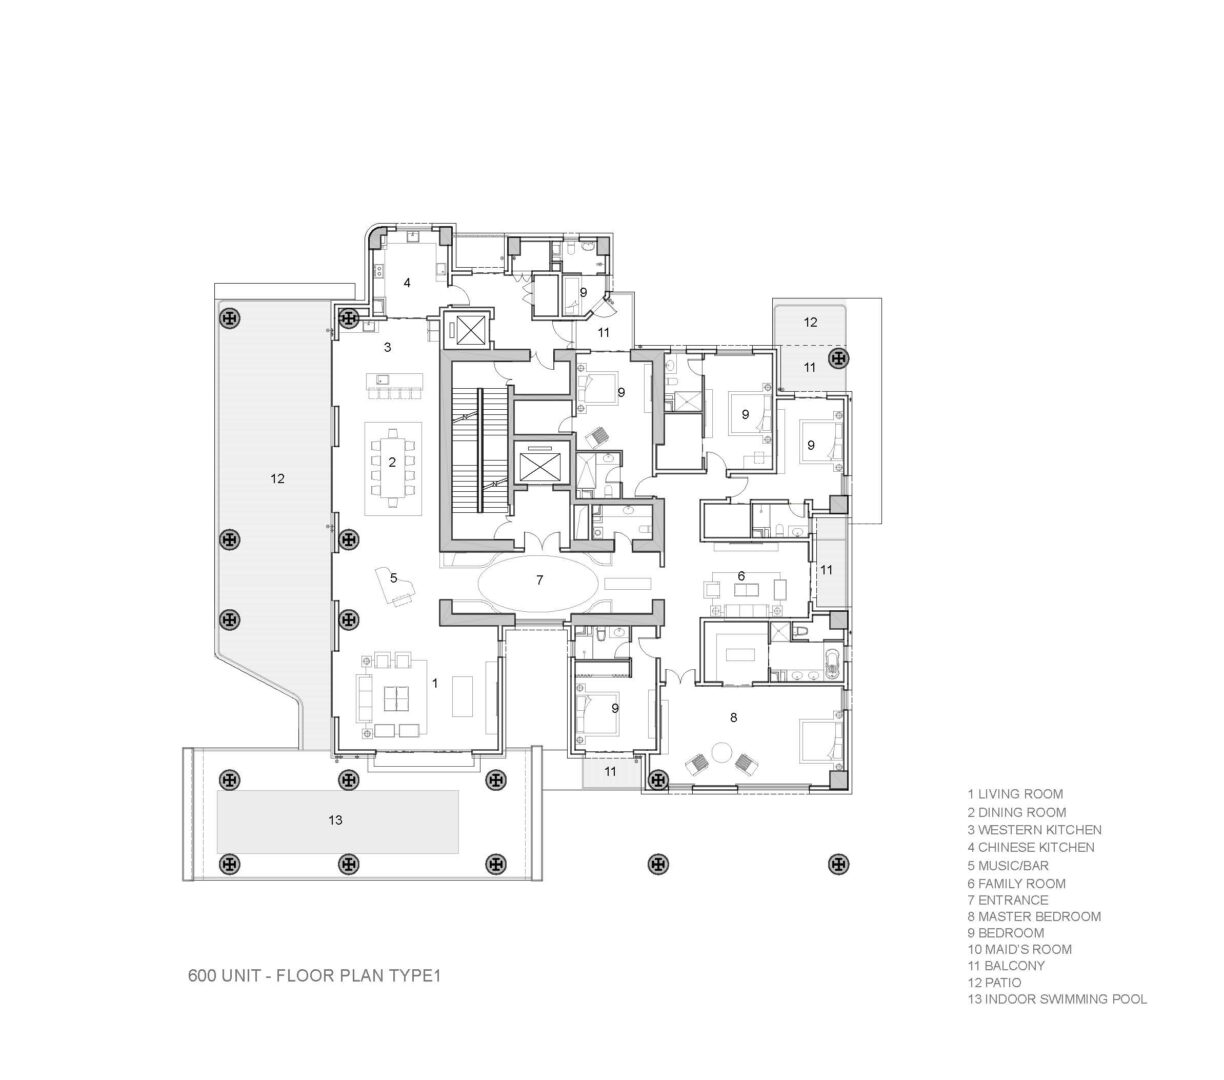 1212_floor-plan_600-unit-type-1